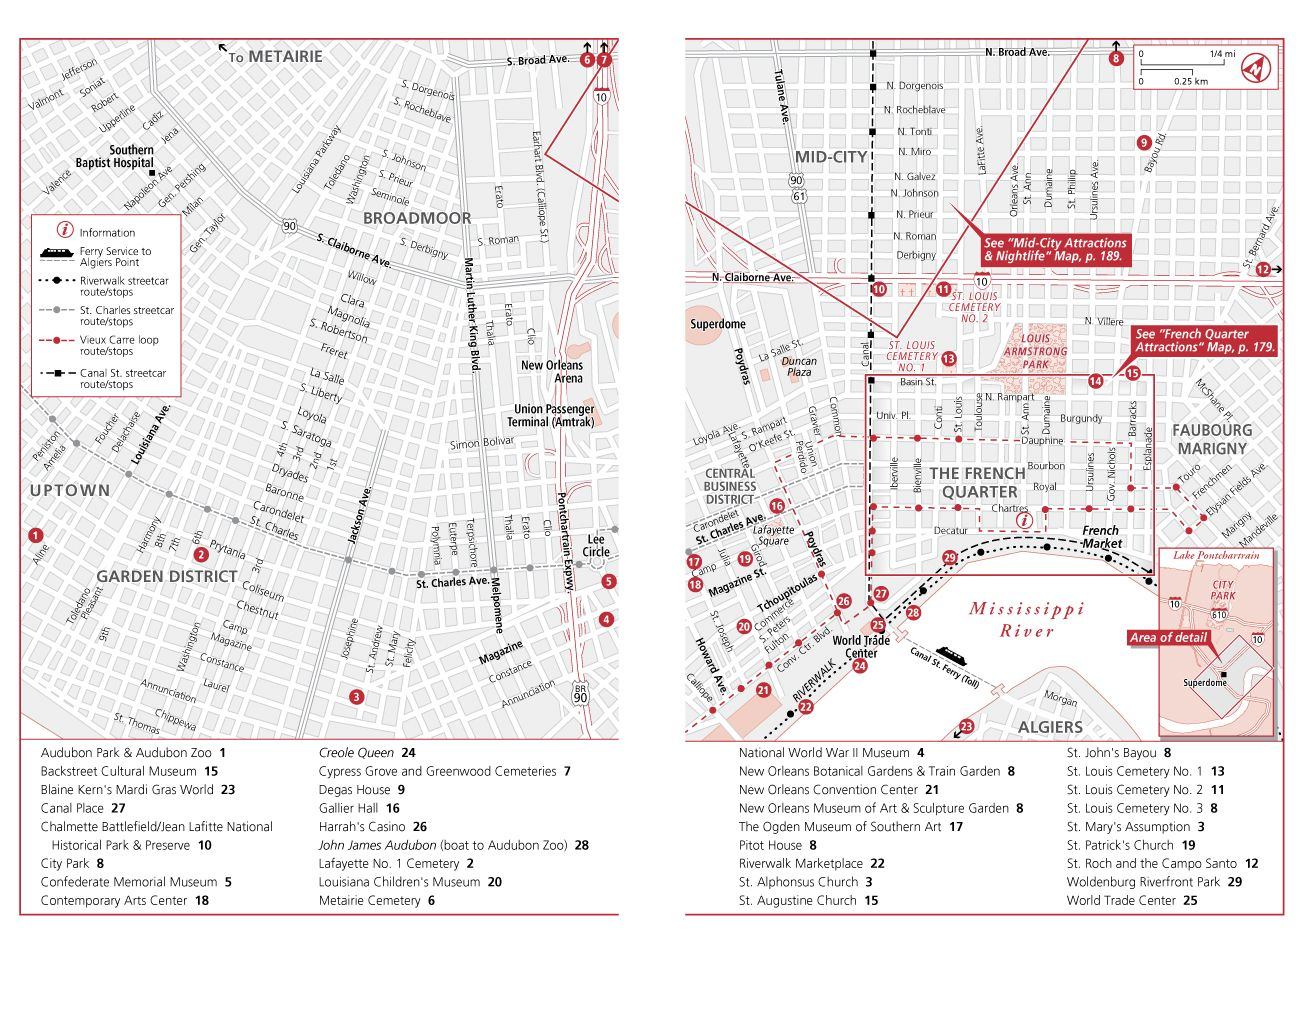 NEW ORLEANS ATTRACTIONS MAP FROMMERS New Orleans 2016